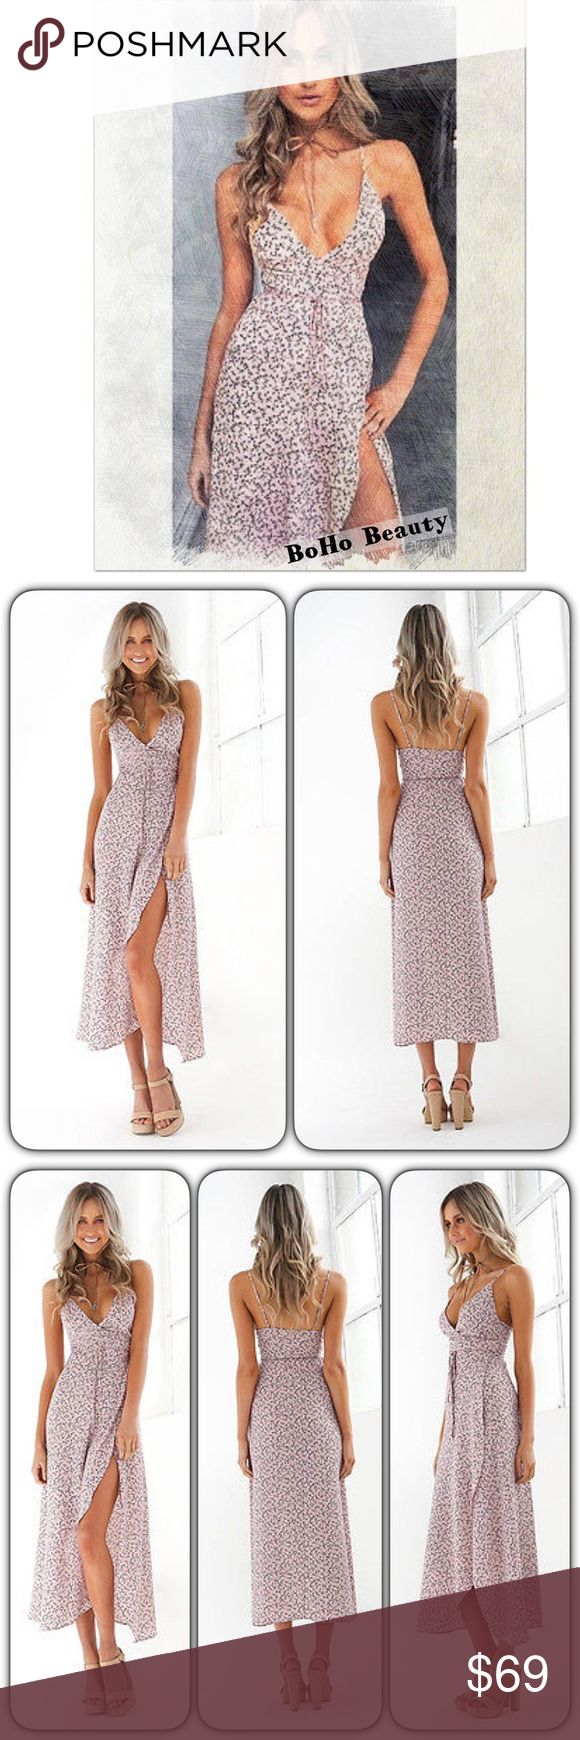 """BOHOBEAUTY/Strappy tiewaist/vintagefloral dress  Just Arrived/BOHO BEAUTY/Strapy cris-cross Spaghetti Straps/Assymetrical Hemline/Polyester/in the most femnine,flirty,floral print,with an adjustable tie-waist close. Go as daringly bare as U like? This beauty is perfect 4 the hot Summer months we're having! Ur wrapped in a pale pink floral garden, U can pair with sandals,tennieshoes,or heels? Change up the look with Ur mood!  No matter what Ur the""""Center""""of attention & all eyes R on U…"""